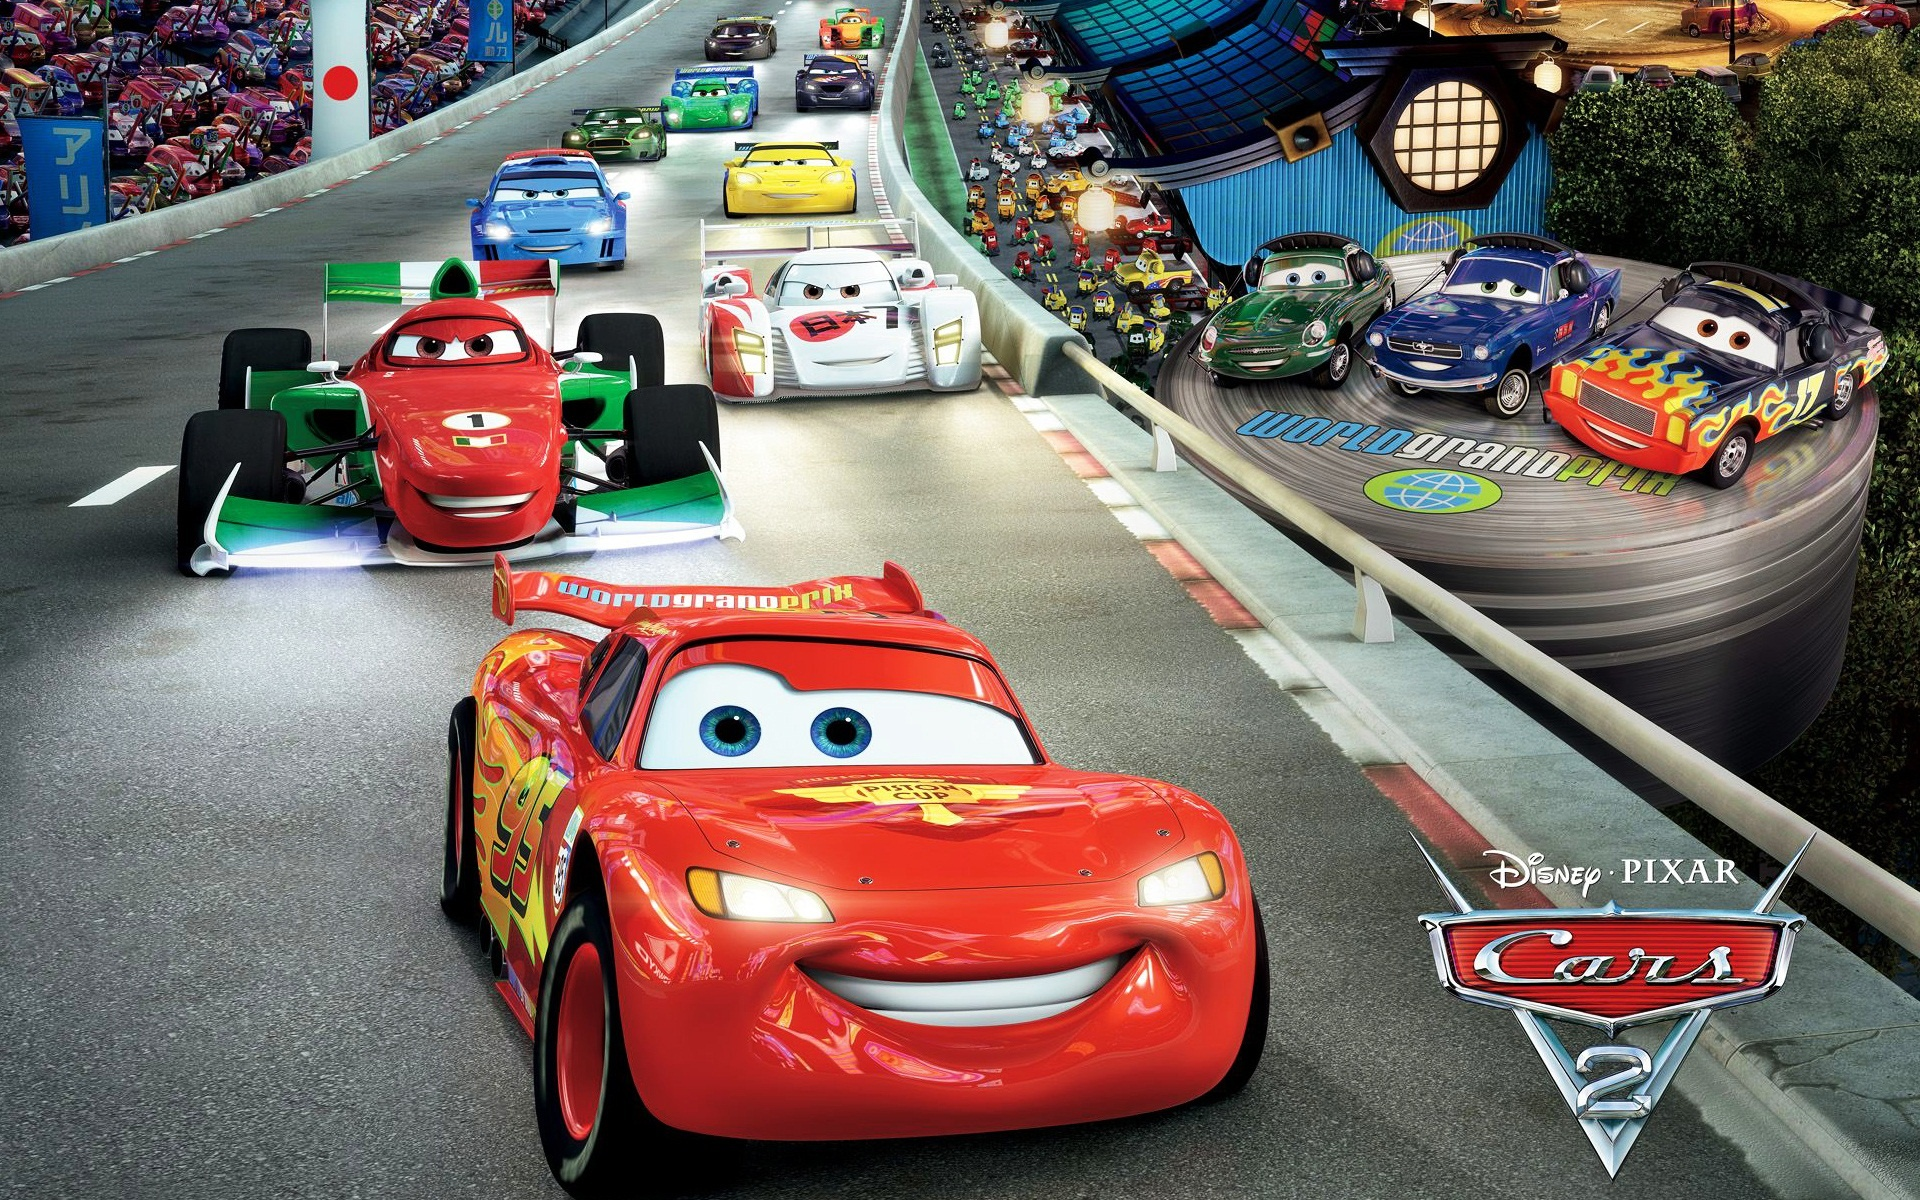 cars 2 race wallpapers in jpg format for free download